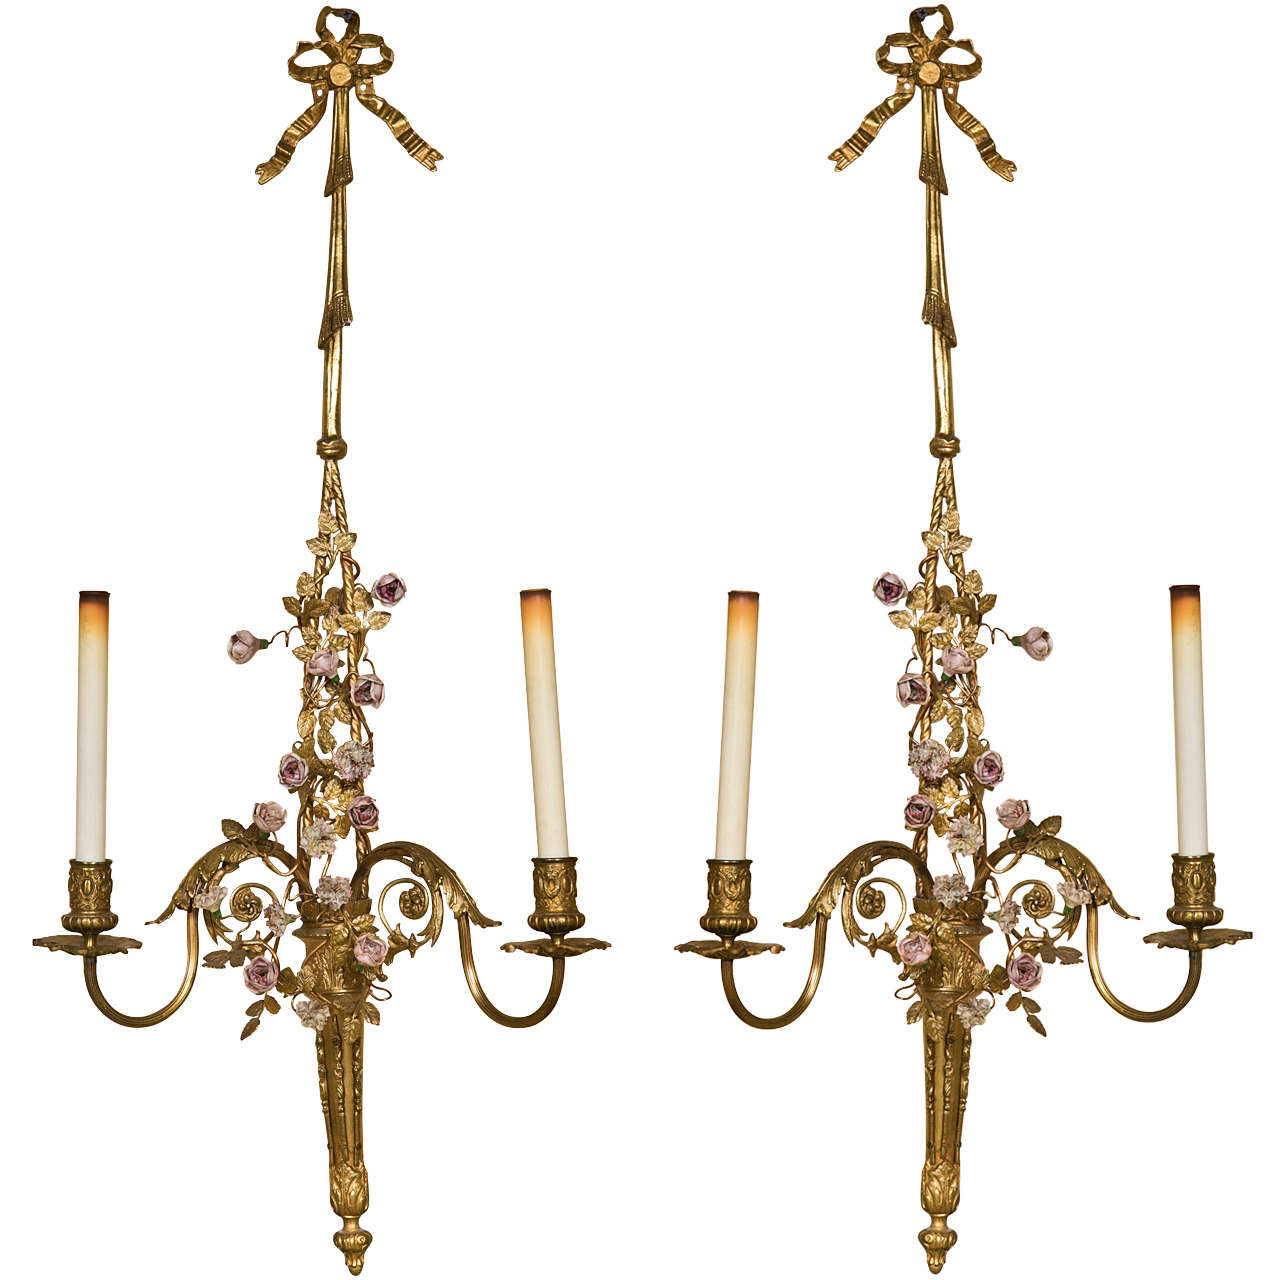 French Brass Wall Sconces : French Belle Epoque Style Brass Wall Sconces